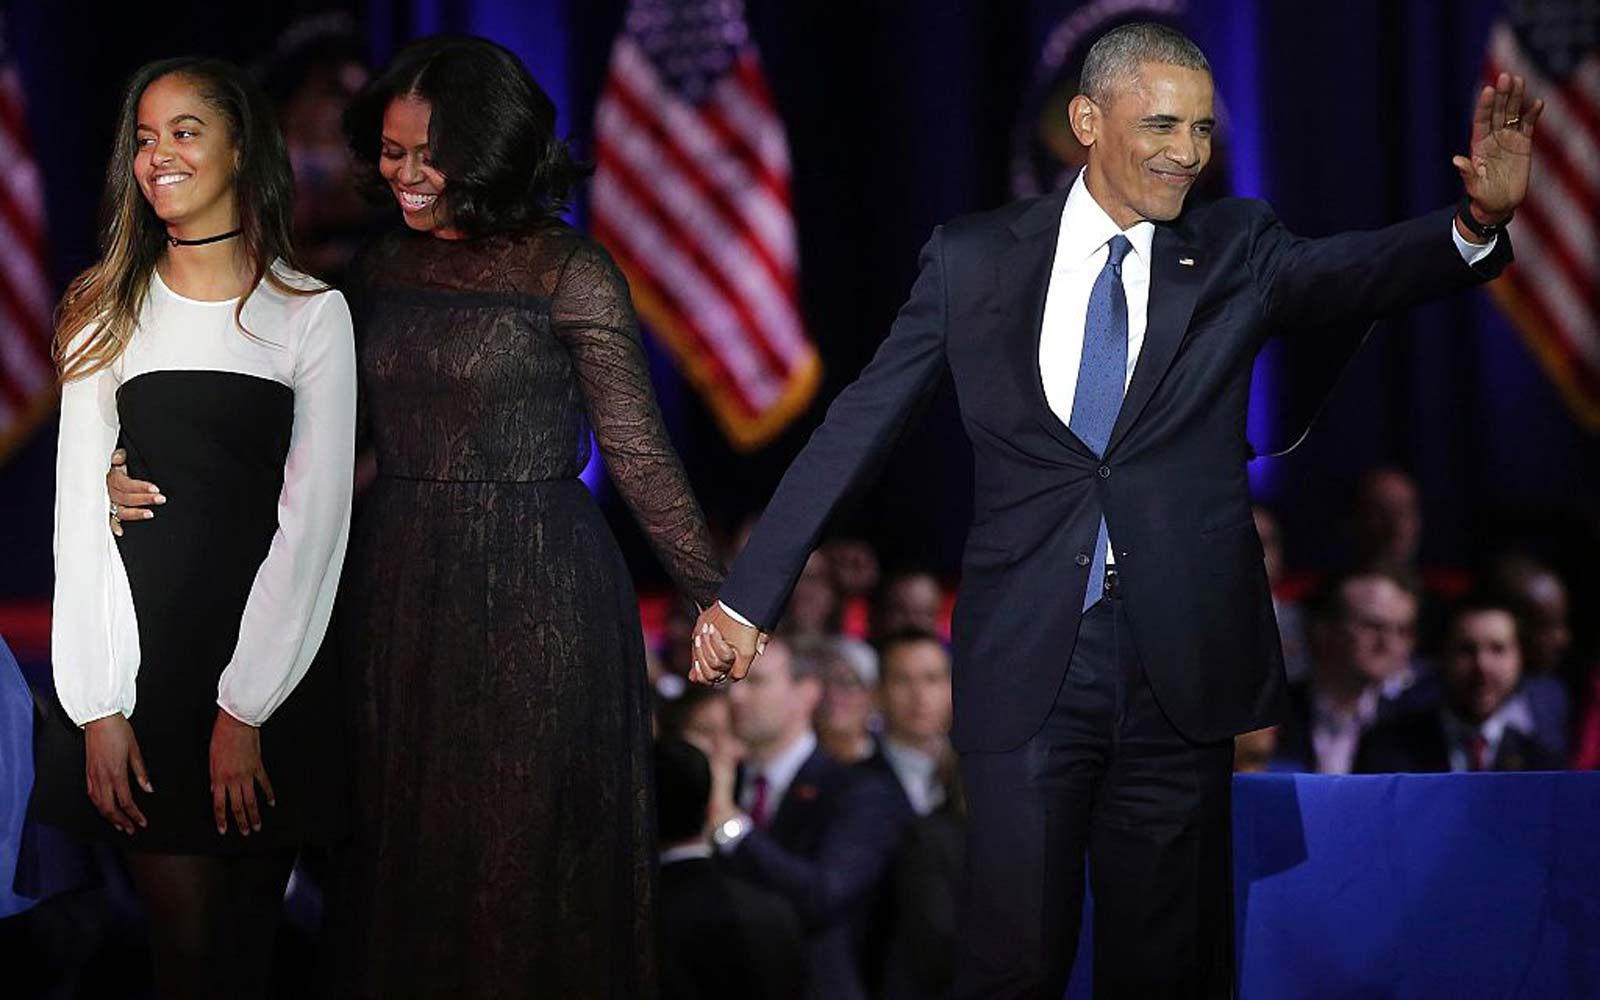 US First Lady Michelle Obama and US President Barack Obama greet supporters as daughter Malia looks on after the President delivered his farewell address in Chicago, Illinois